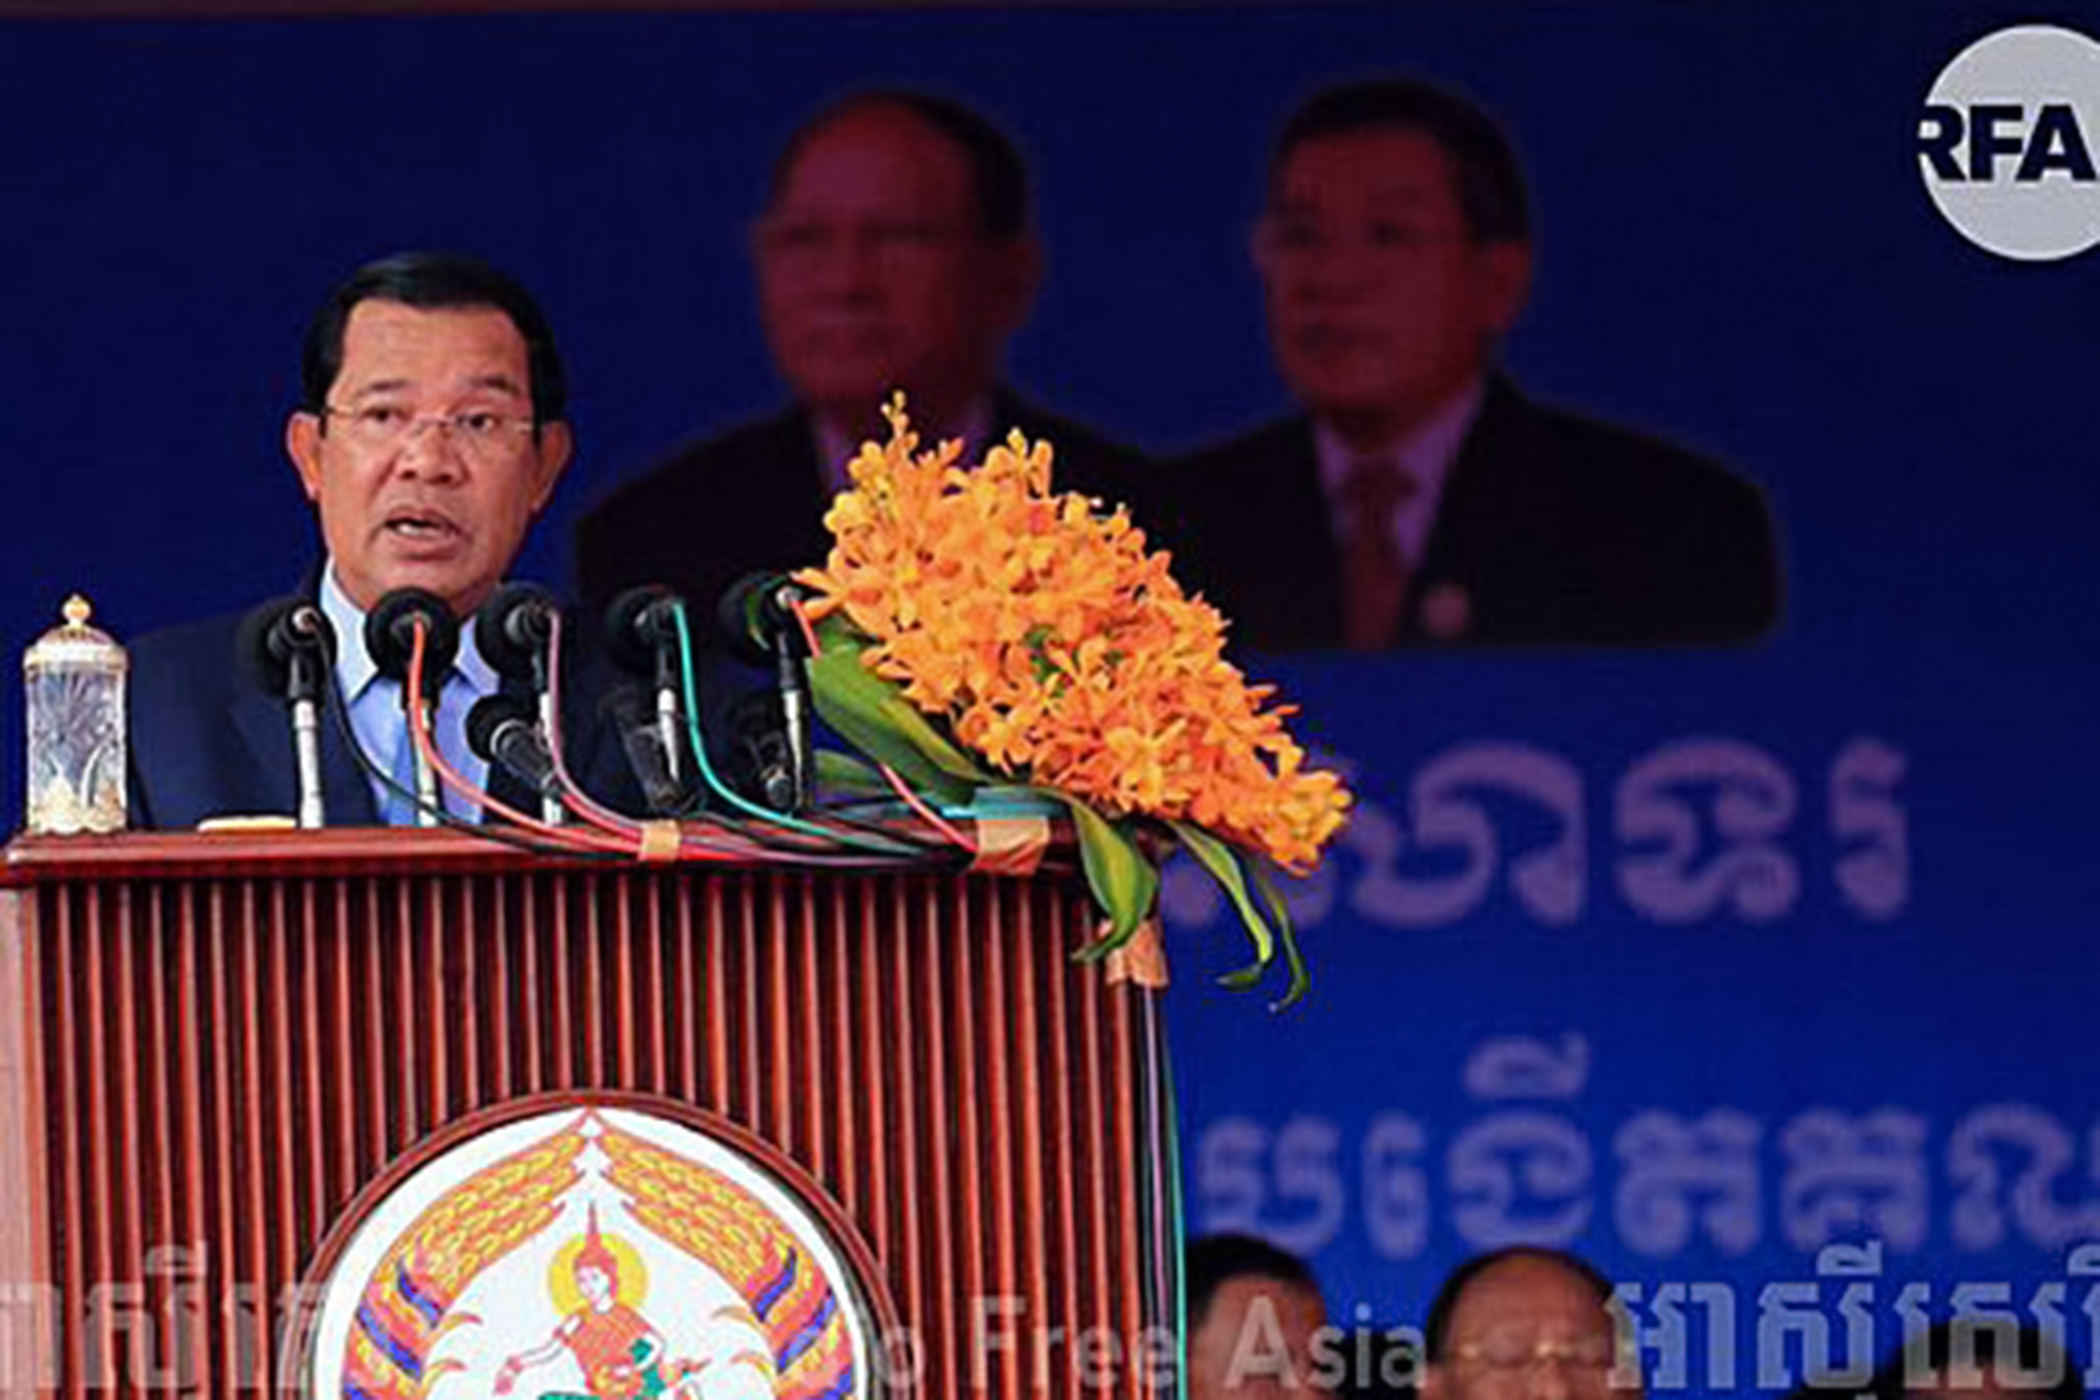 An asian man speaks into a microphone at a lectern